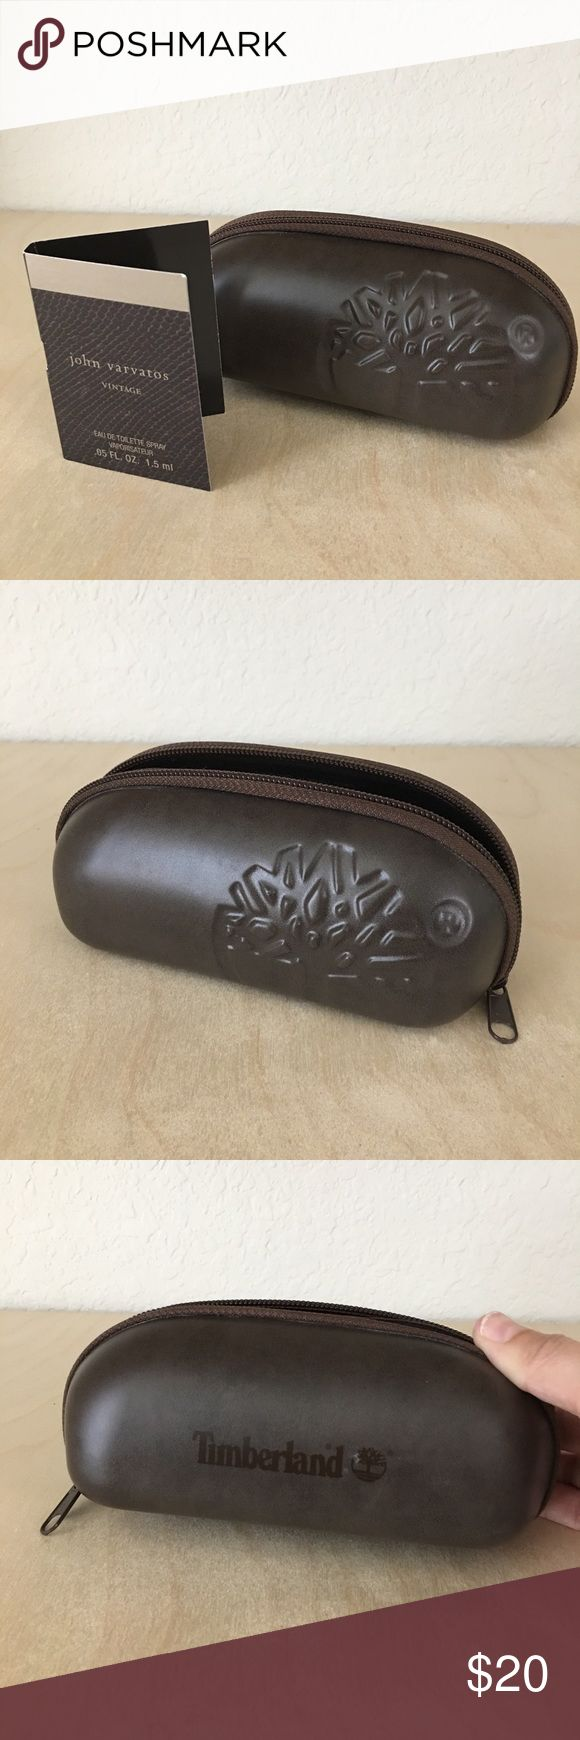 "Timberland Sunglass Case Gently used, so it has a couple of tiny marks on the outside-(as you can see in pics) but in otherwise great condition! Inside is immaculate and zipper works perfectly! *Also comes with a fee sample of John Varvatos ""Vintage"" cologne for men. Timberland Accessories Sunglasses"